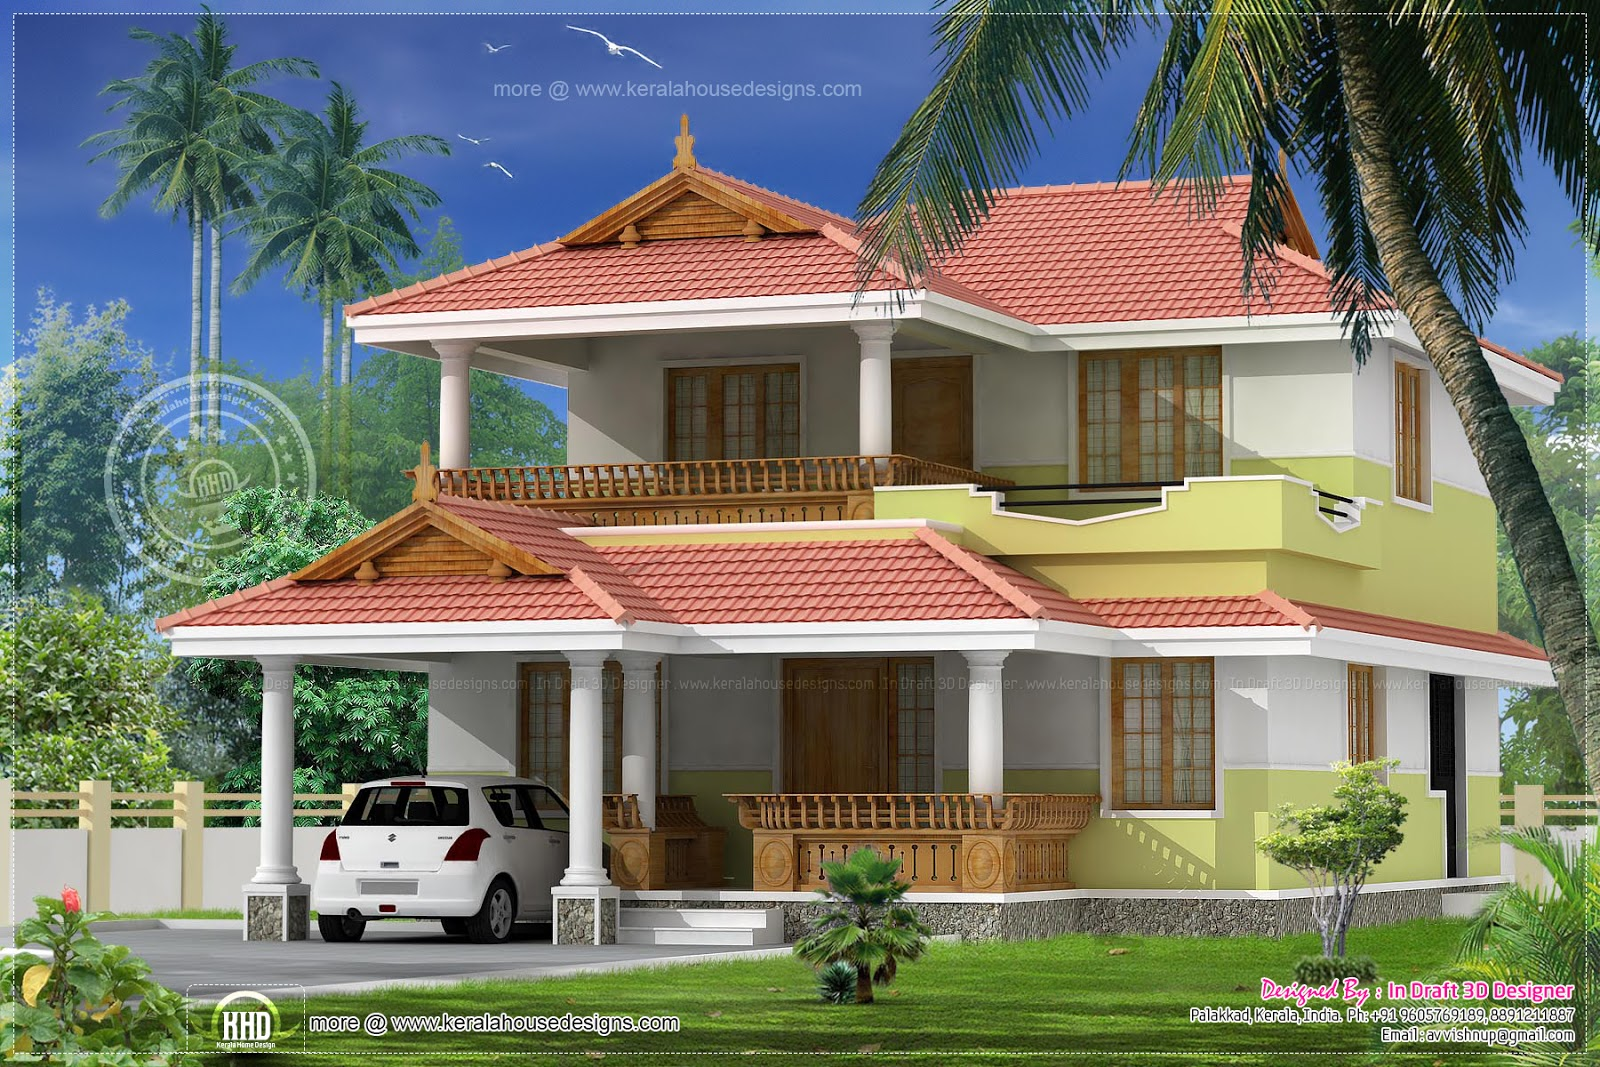 3 Bed Room Traditional Villa 1740 Kerala Home